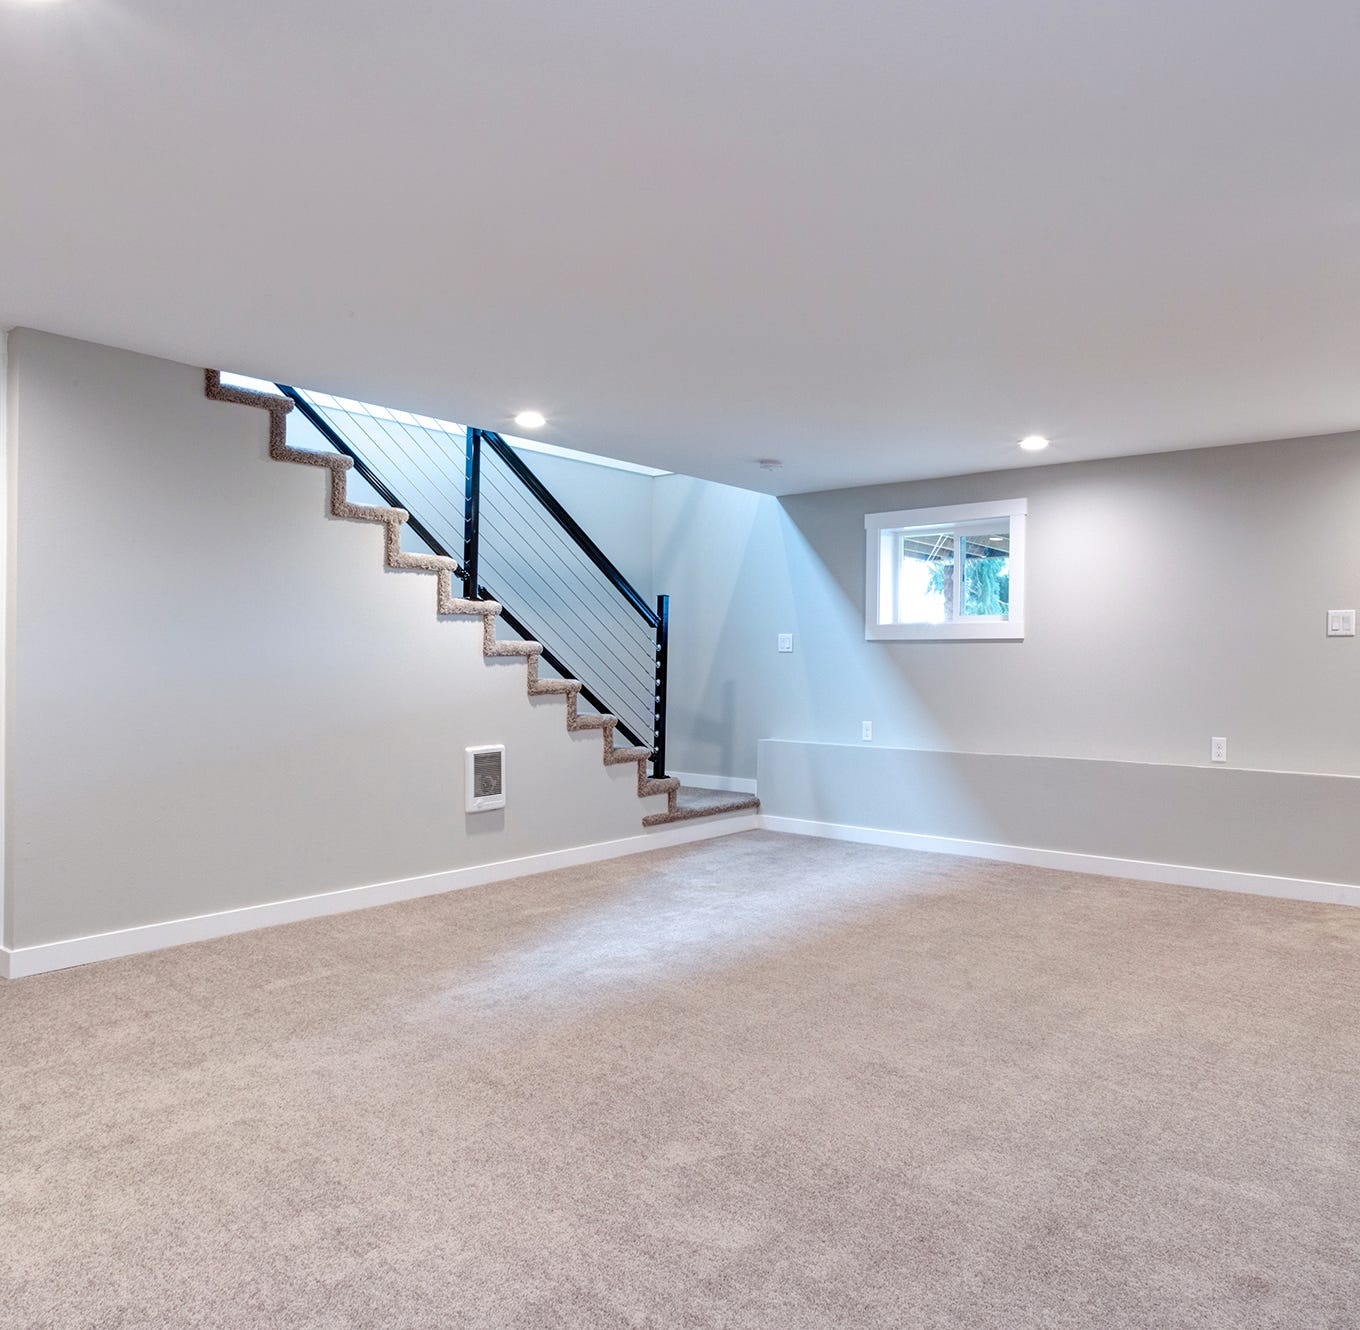 How Do I Choose the Right Flooring For My Basement?